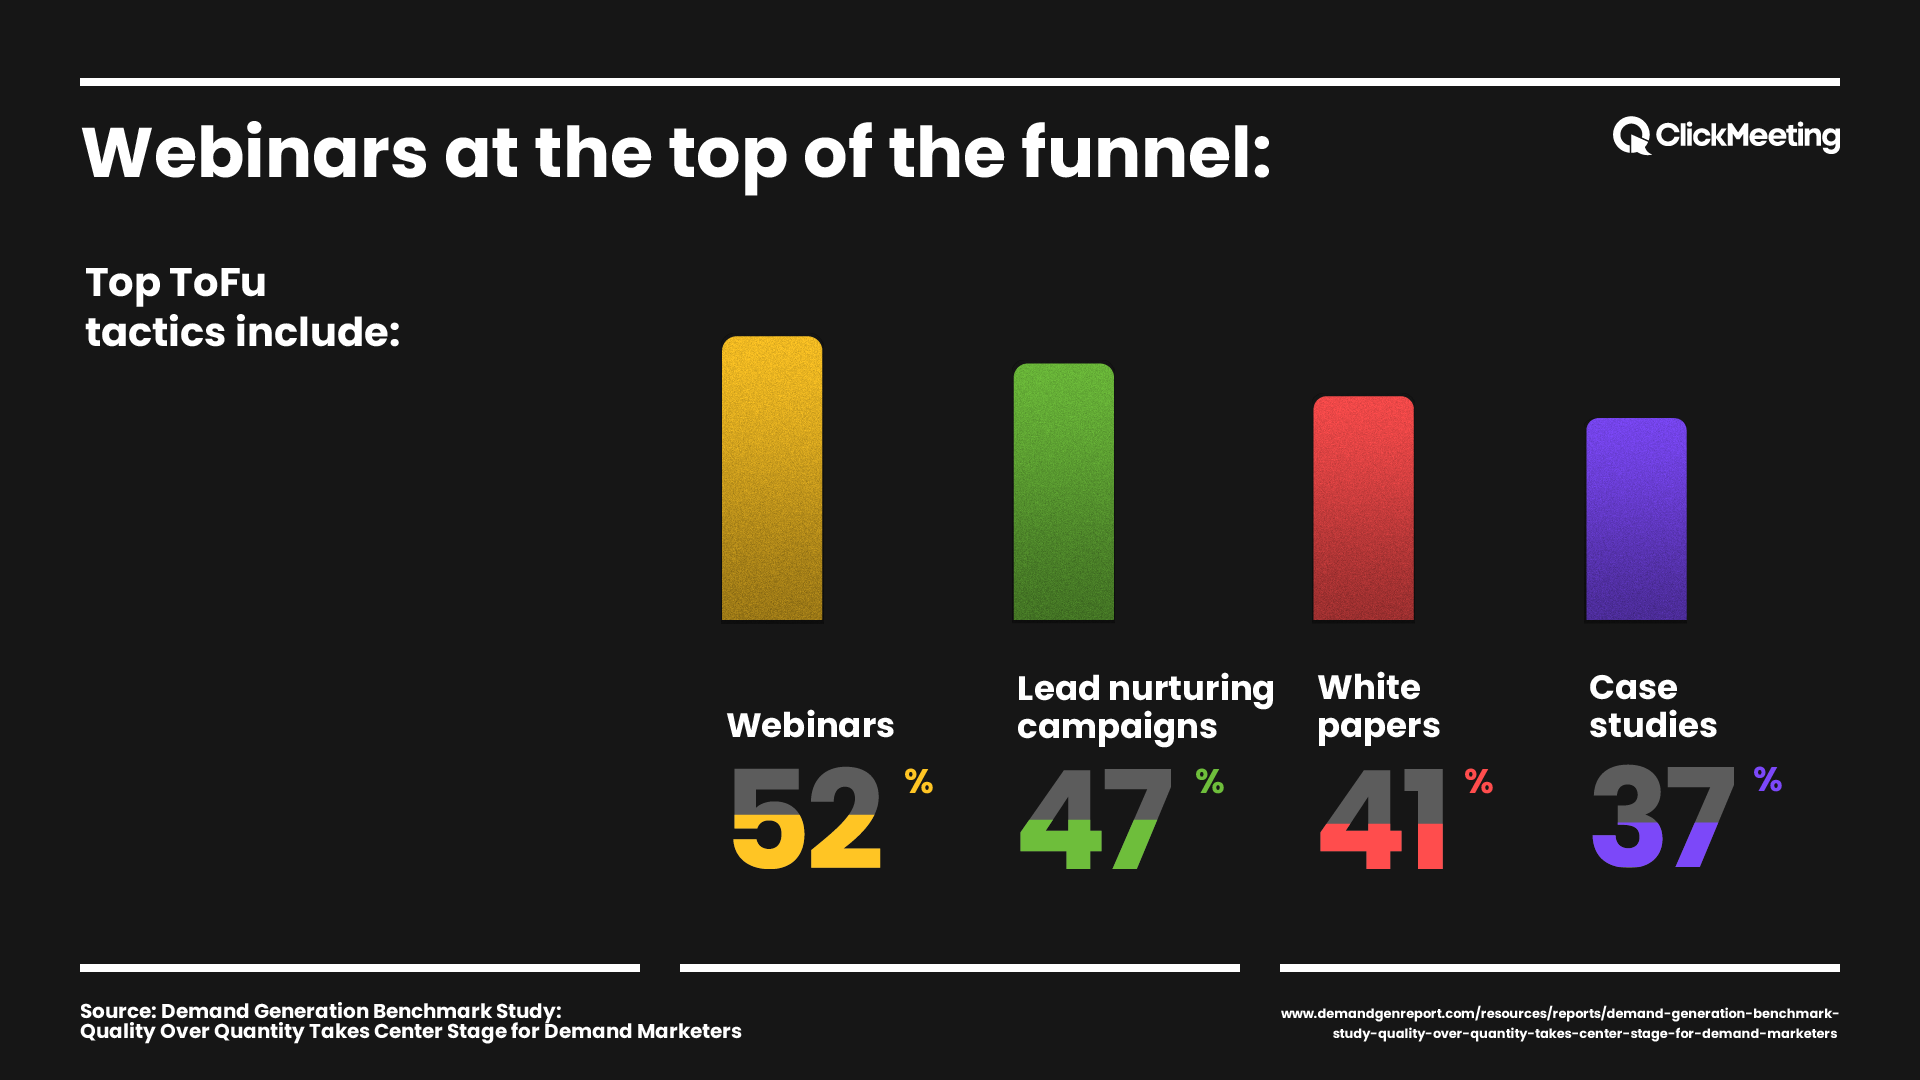 ClickMeeting State of Webinars - Webinars at the top of the funnel